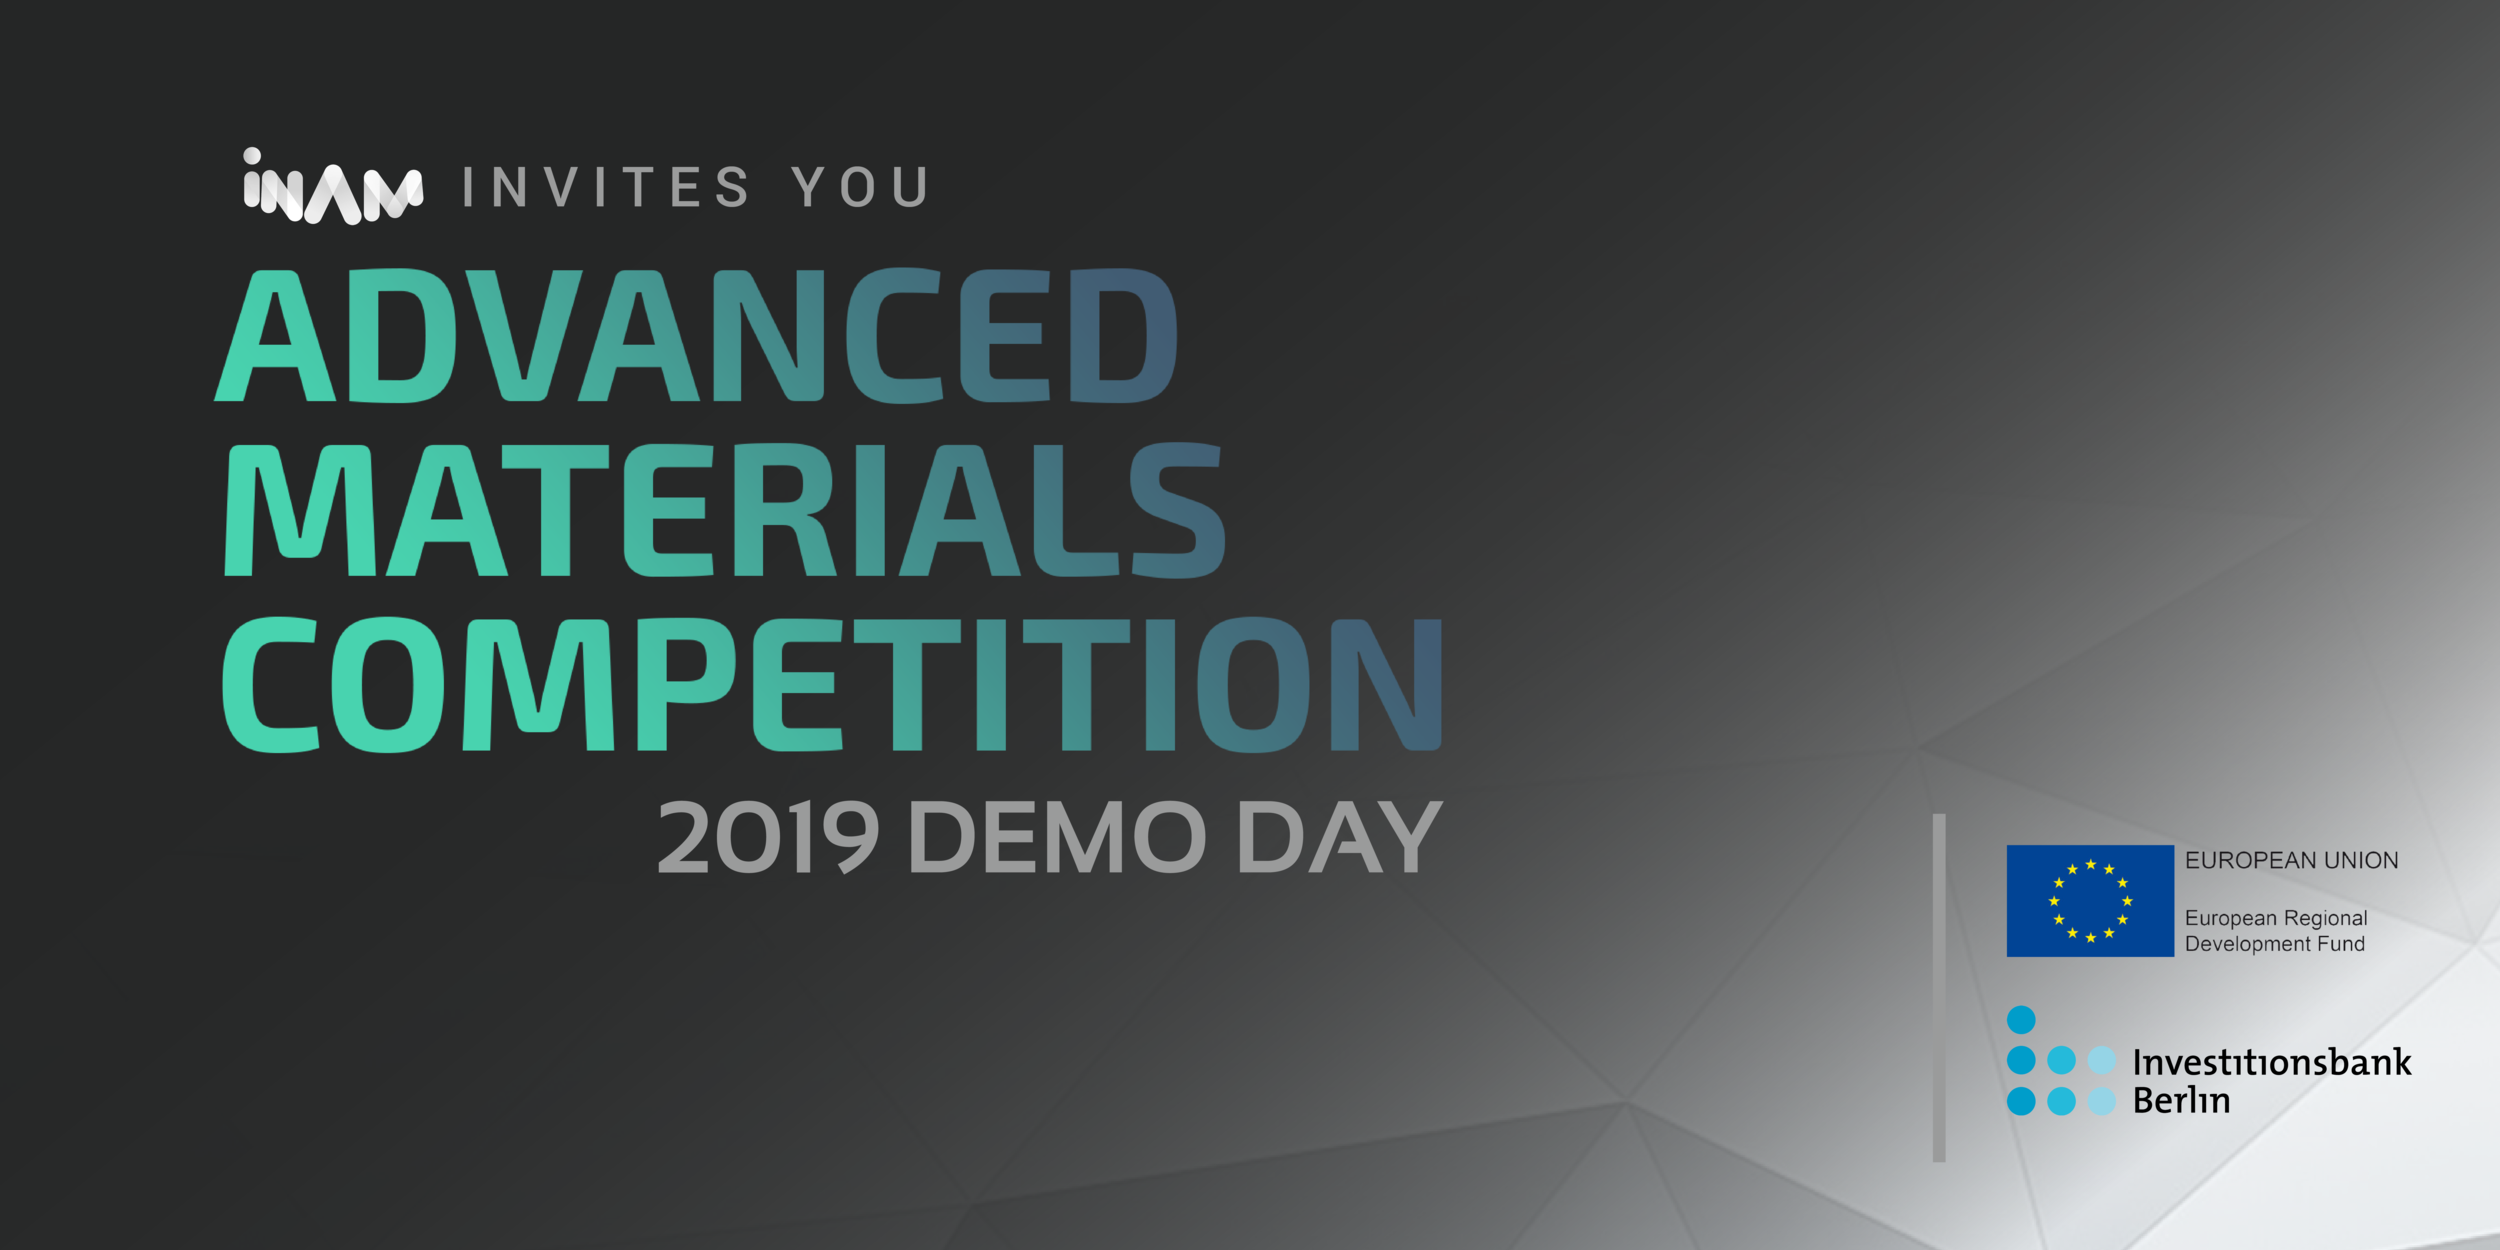 2019 ADMACOM DEMO DAY - Join us to hear pitches from 11 exciting startups in materials science. The teams come from all over the world and the Demo Day marks their graduation from our intense 2 week Accelerator Program, AdMaCom.